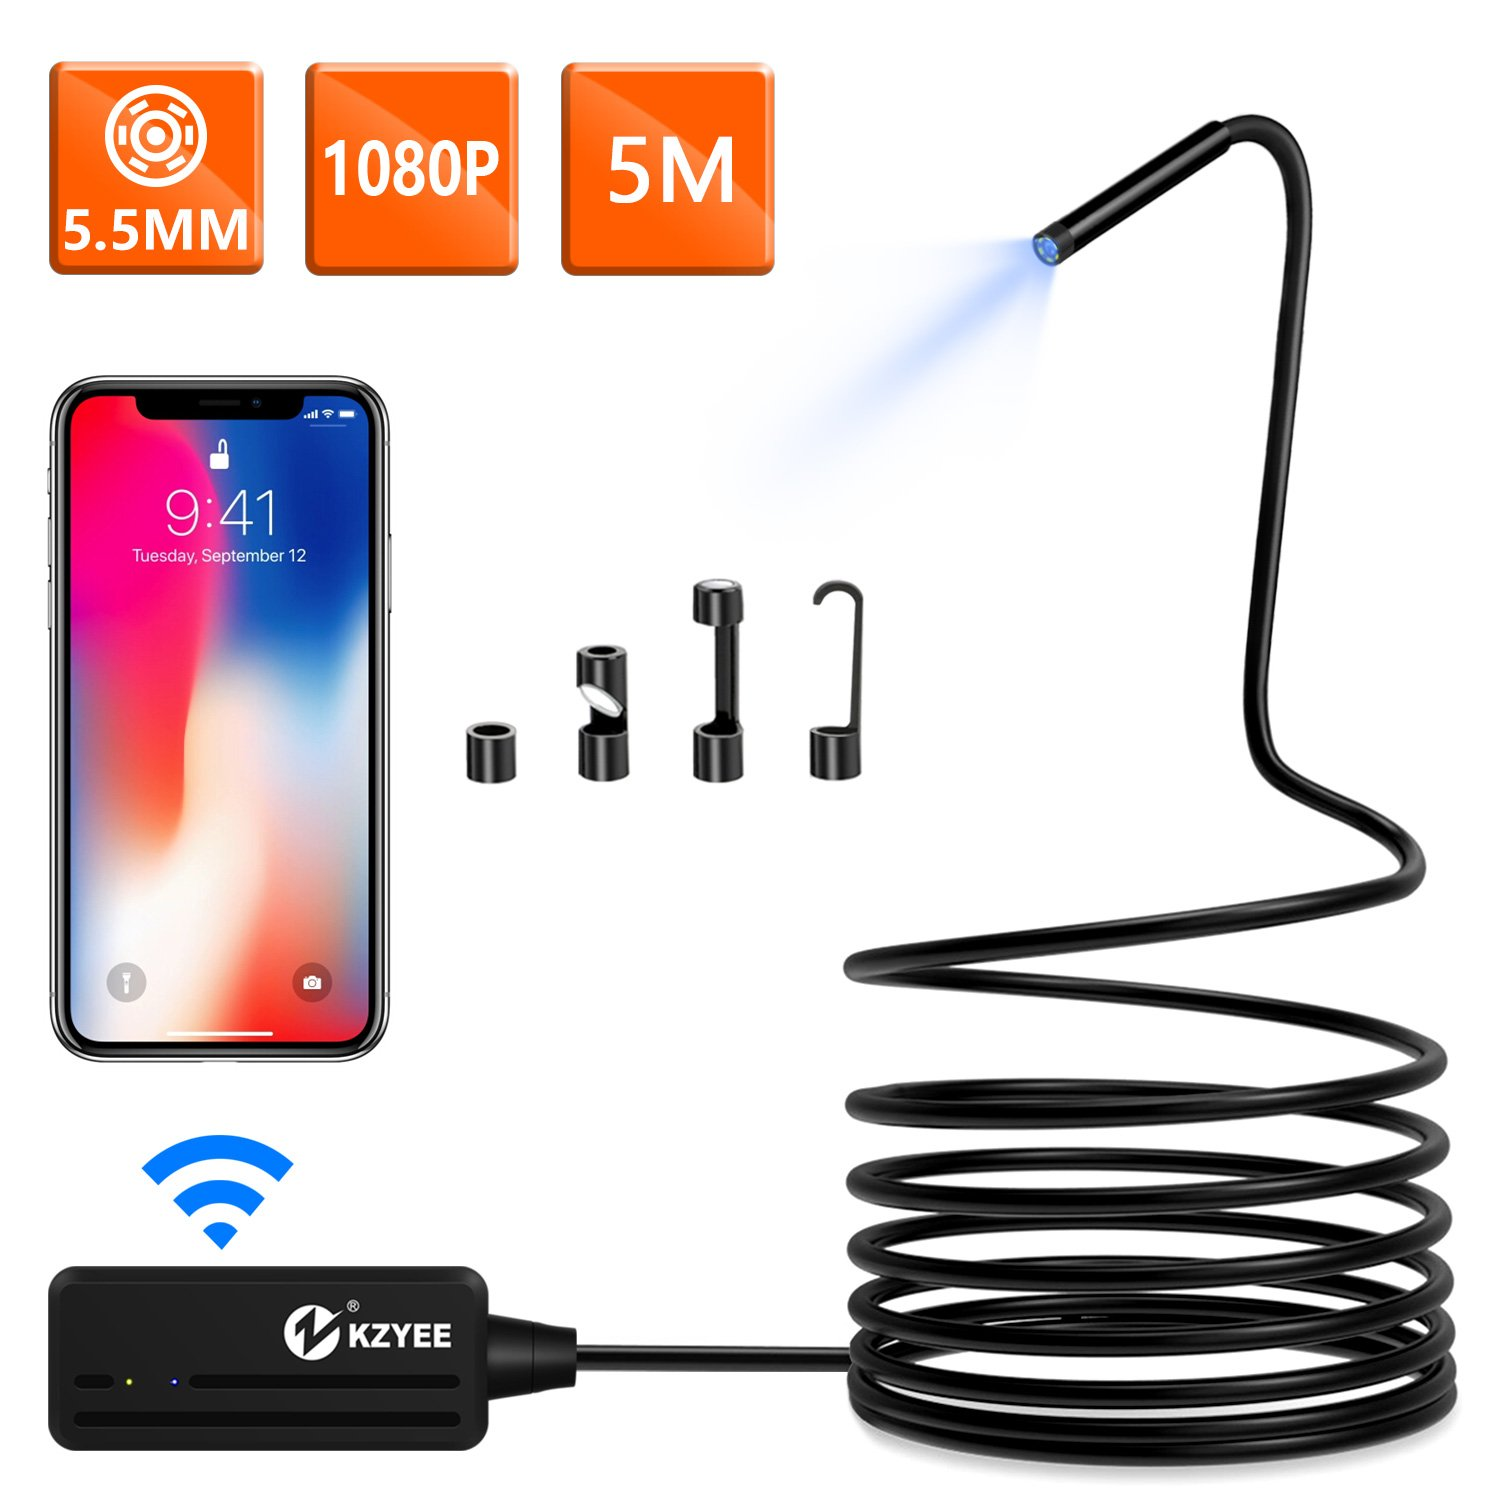 KZYEE Wireless Endoscope, 5.5mm Diameter 1080P 2.0 MP HD Semi-Rigid WiFi Borescope Inspection Camera IP67 Waterproof Snake Camera for Android & iOS iPhone Smartphone Tablet-16.5FT by KZYEE